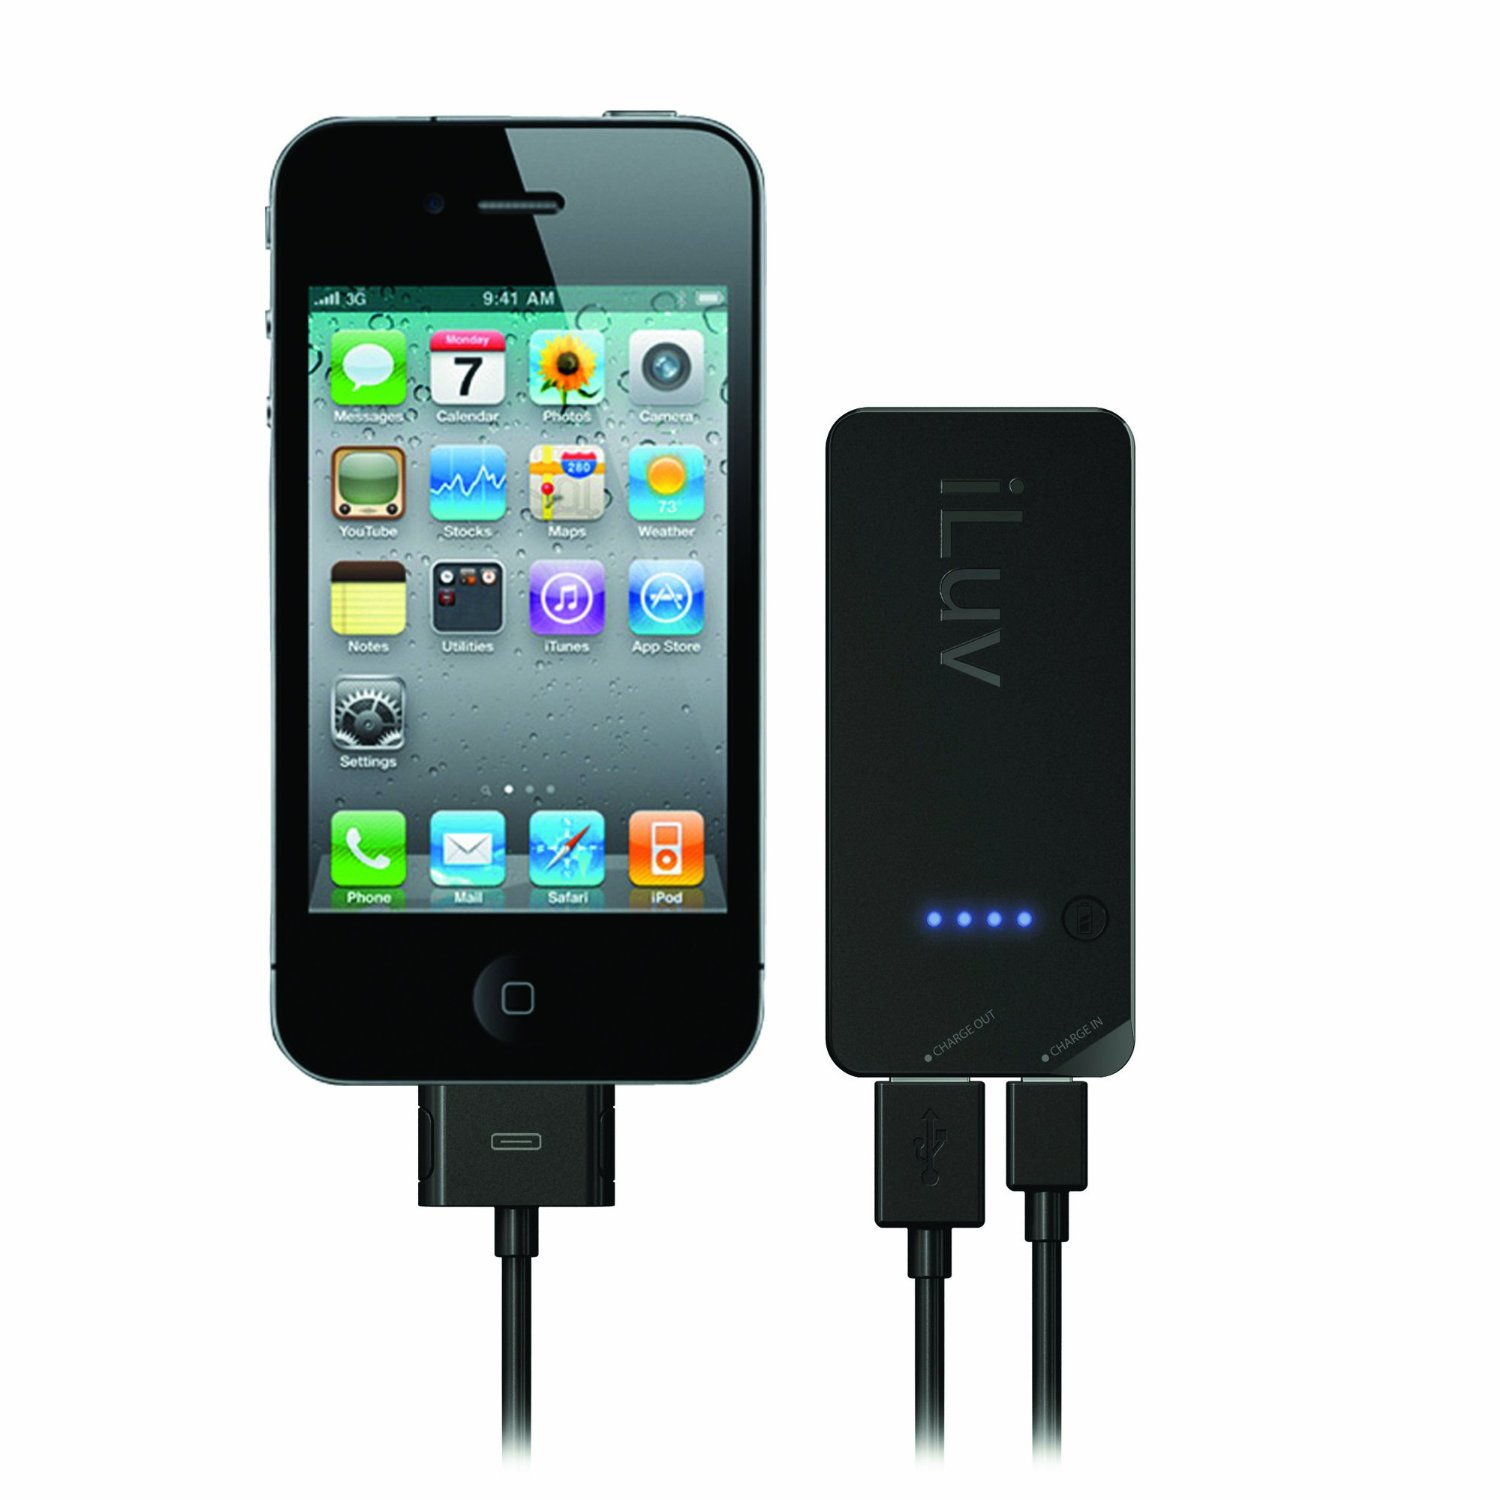 iluv mini portable usb rechargeable battery kit for iphone. Black Bedroom Furniture Sets. Home Design Ideas